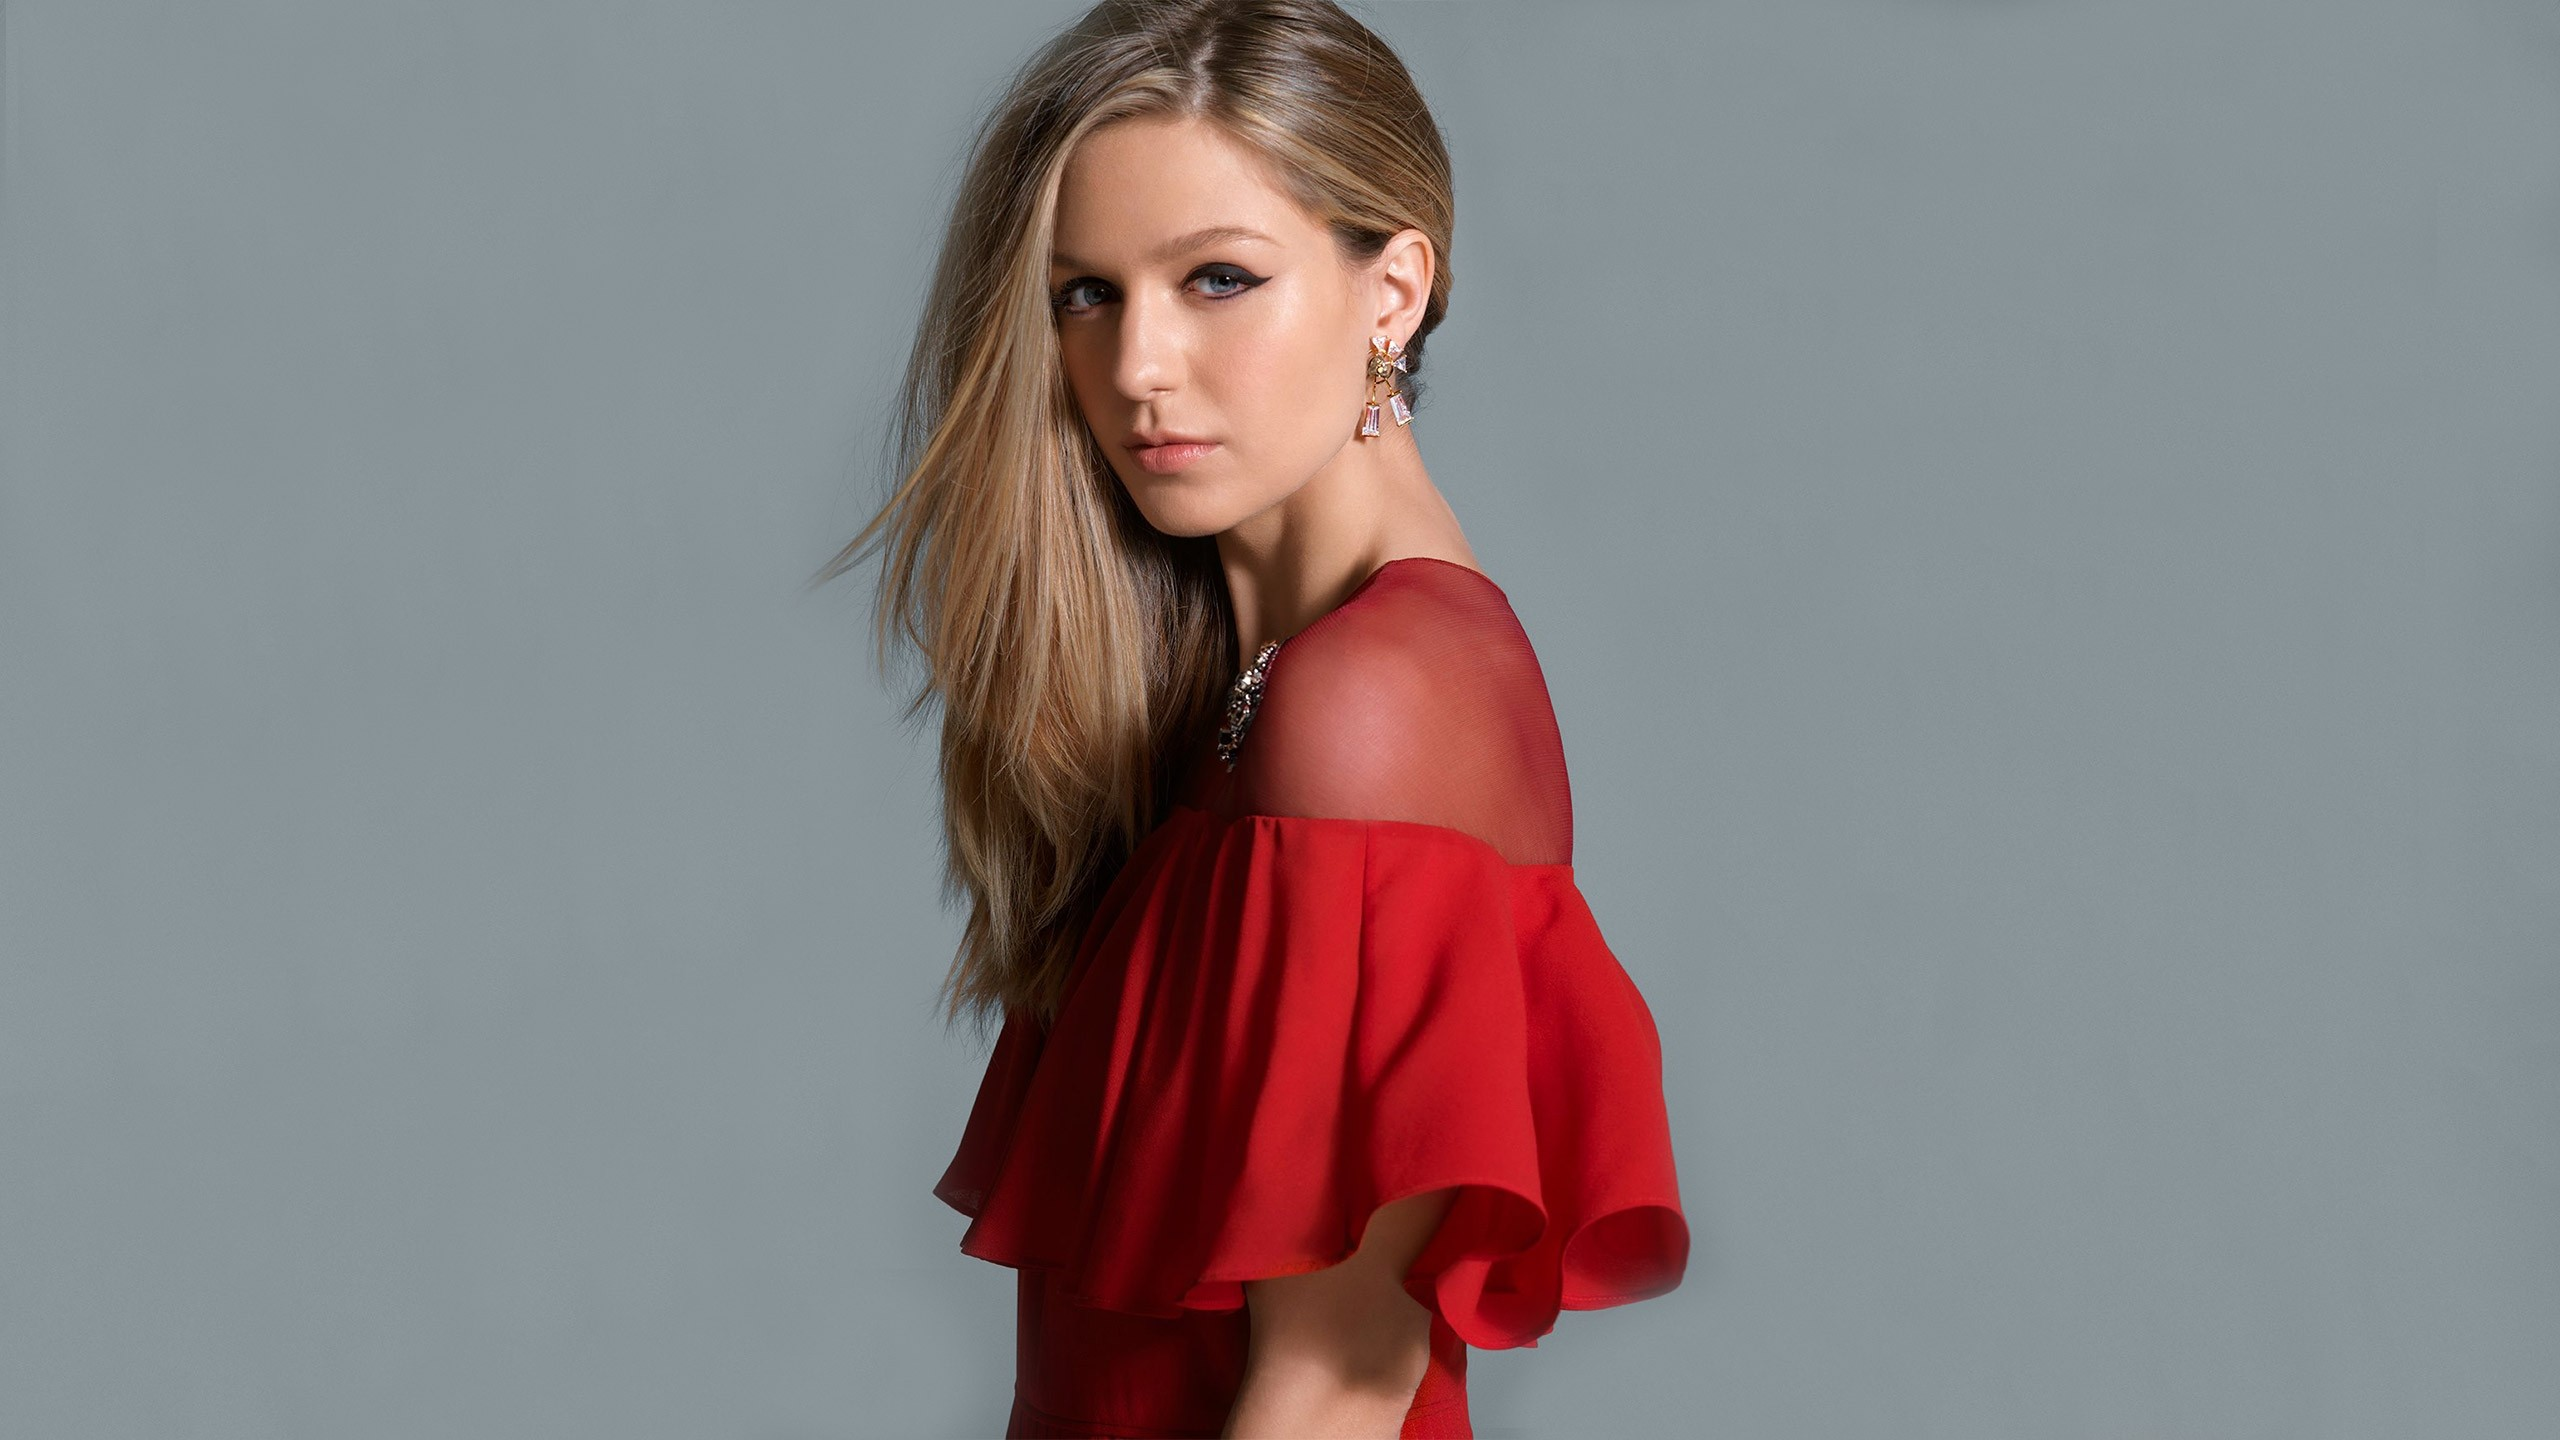 Live Wallpaper Cars Android Melissa Benoist Hd 2017 Wallpapers Hd Wallpapers Id 21554